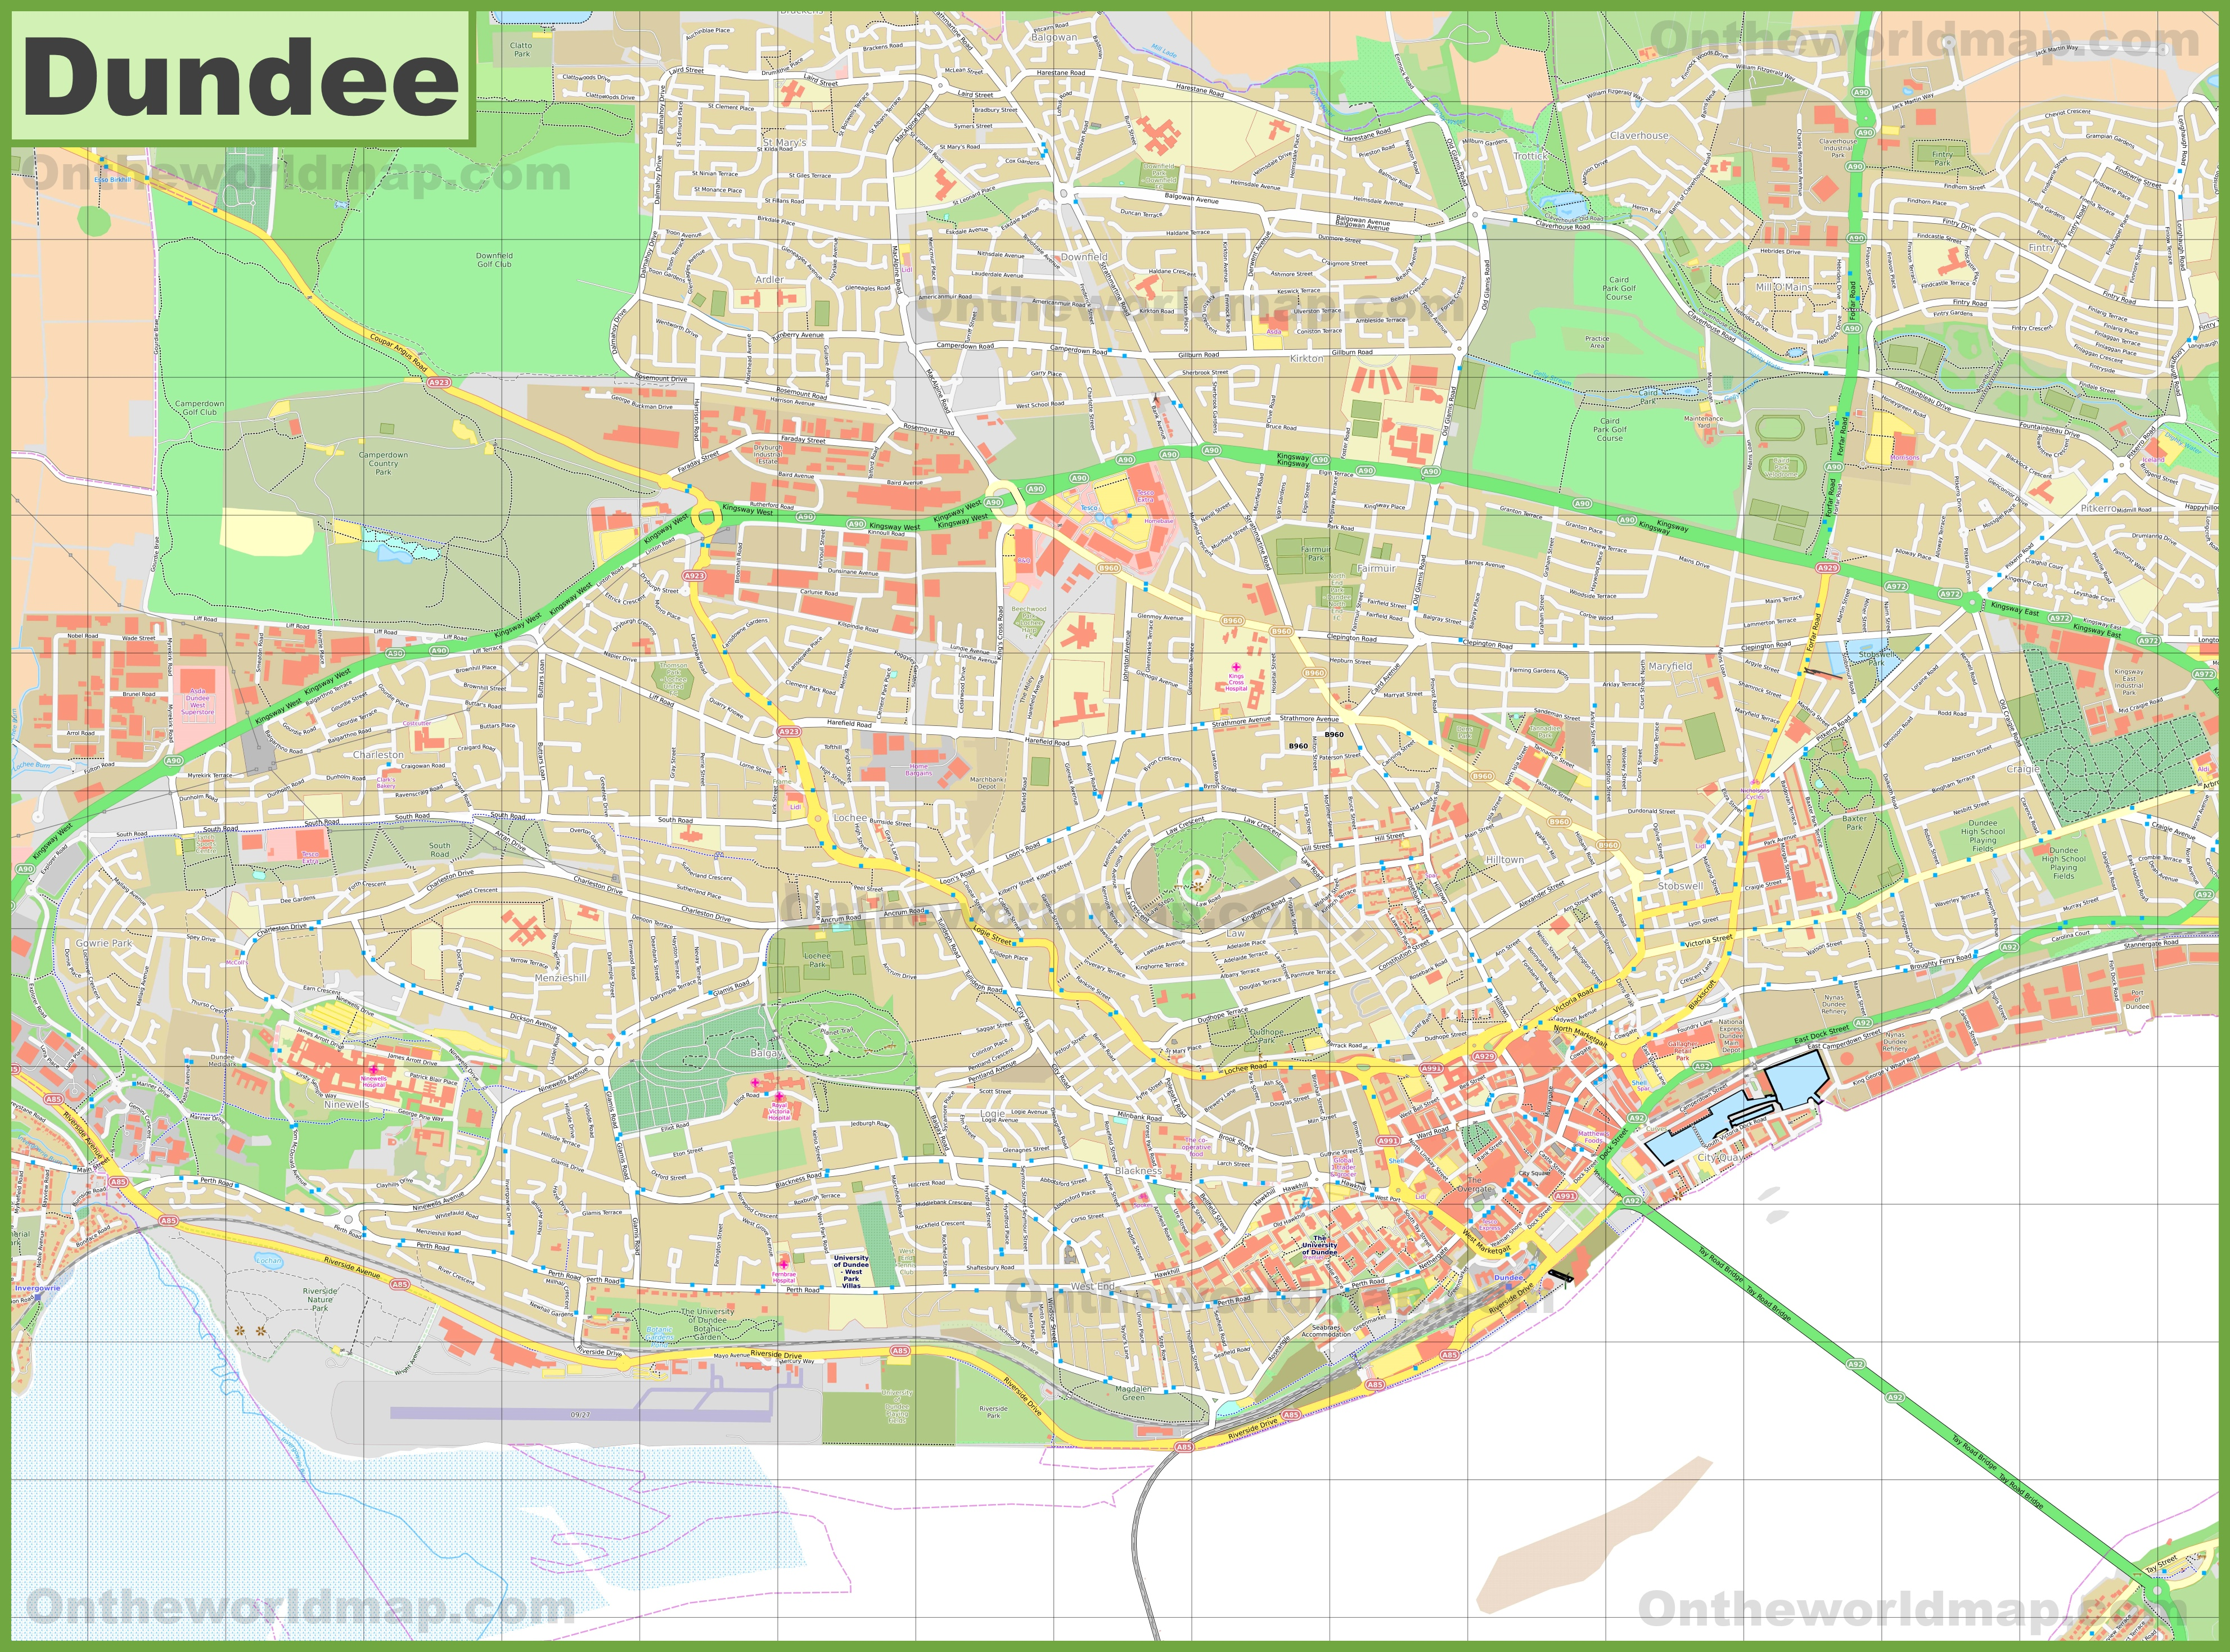 Detailed map of Dundee